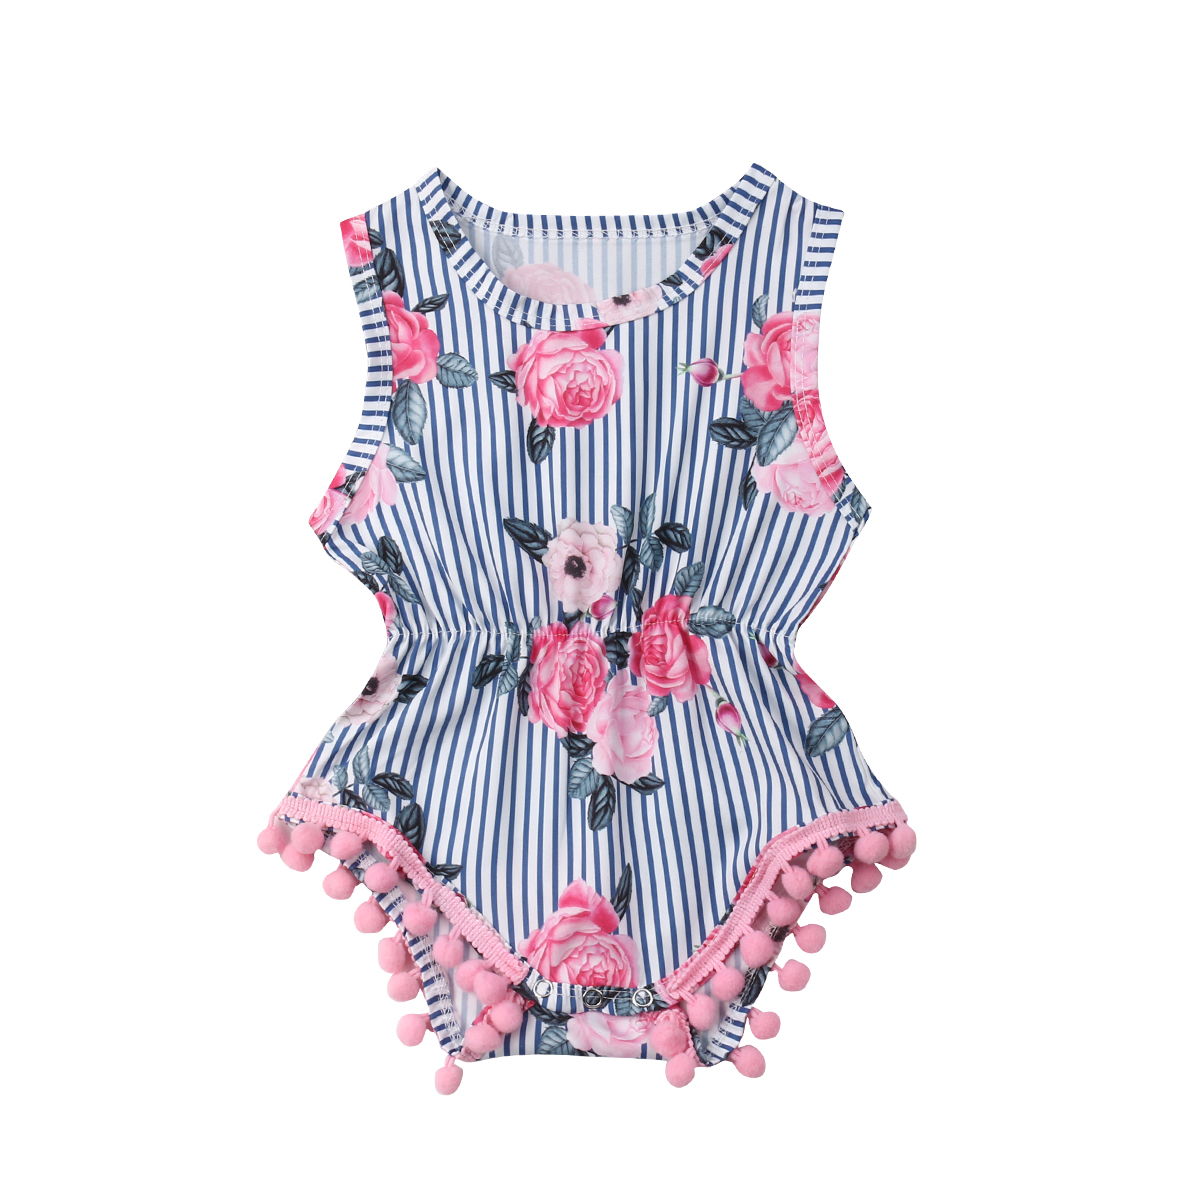 2103f76f955 Lovely Newborn Baby Girl Sleeveless Floral Tassel Ball Romper Jumpsuit  Outfits Summer Sunsuit Clothes